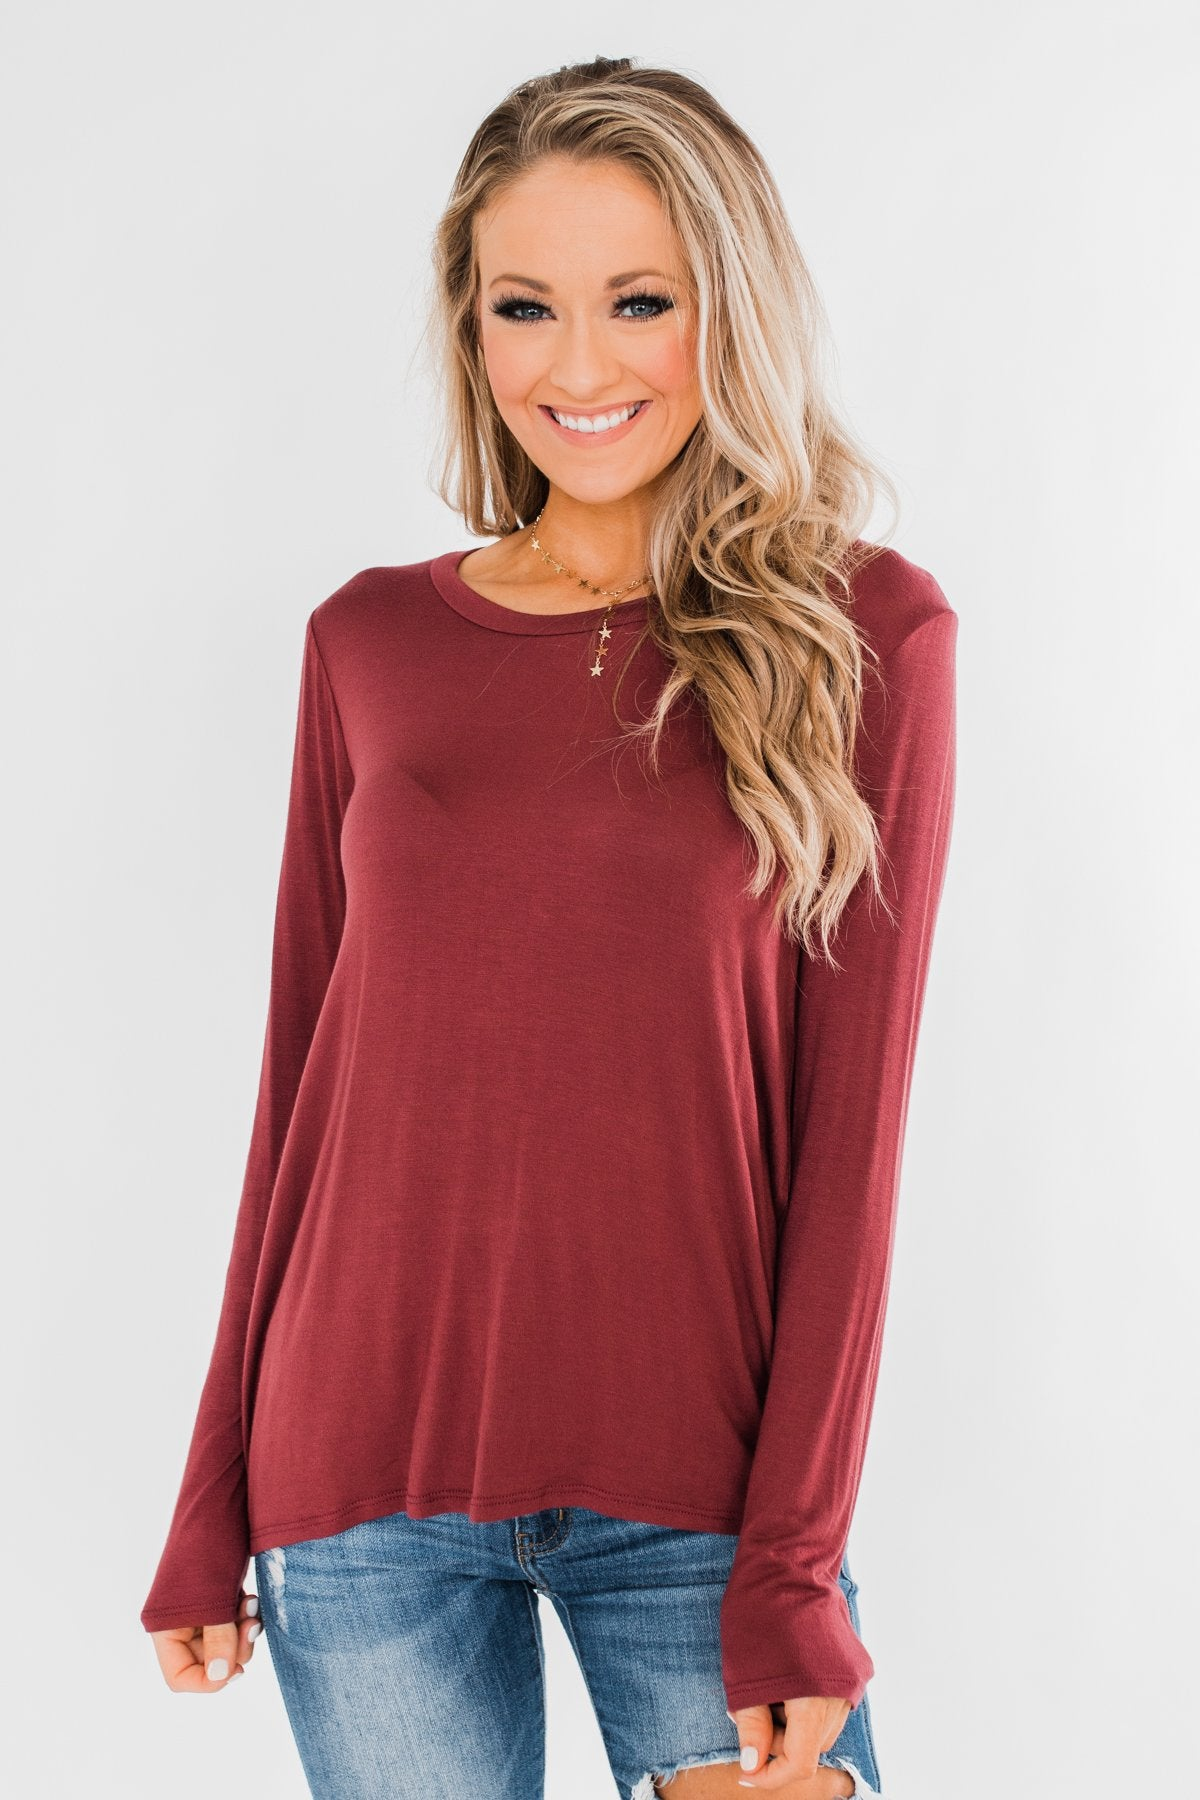 Cut Out Back Long Sleeve Top- Dusty Maroon